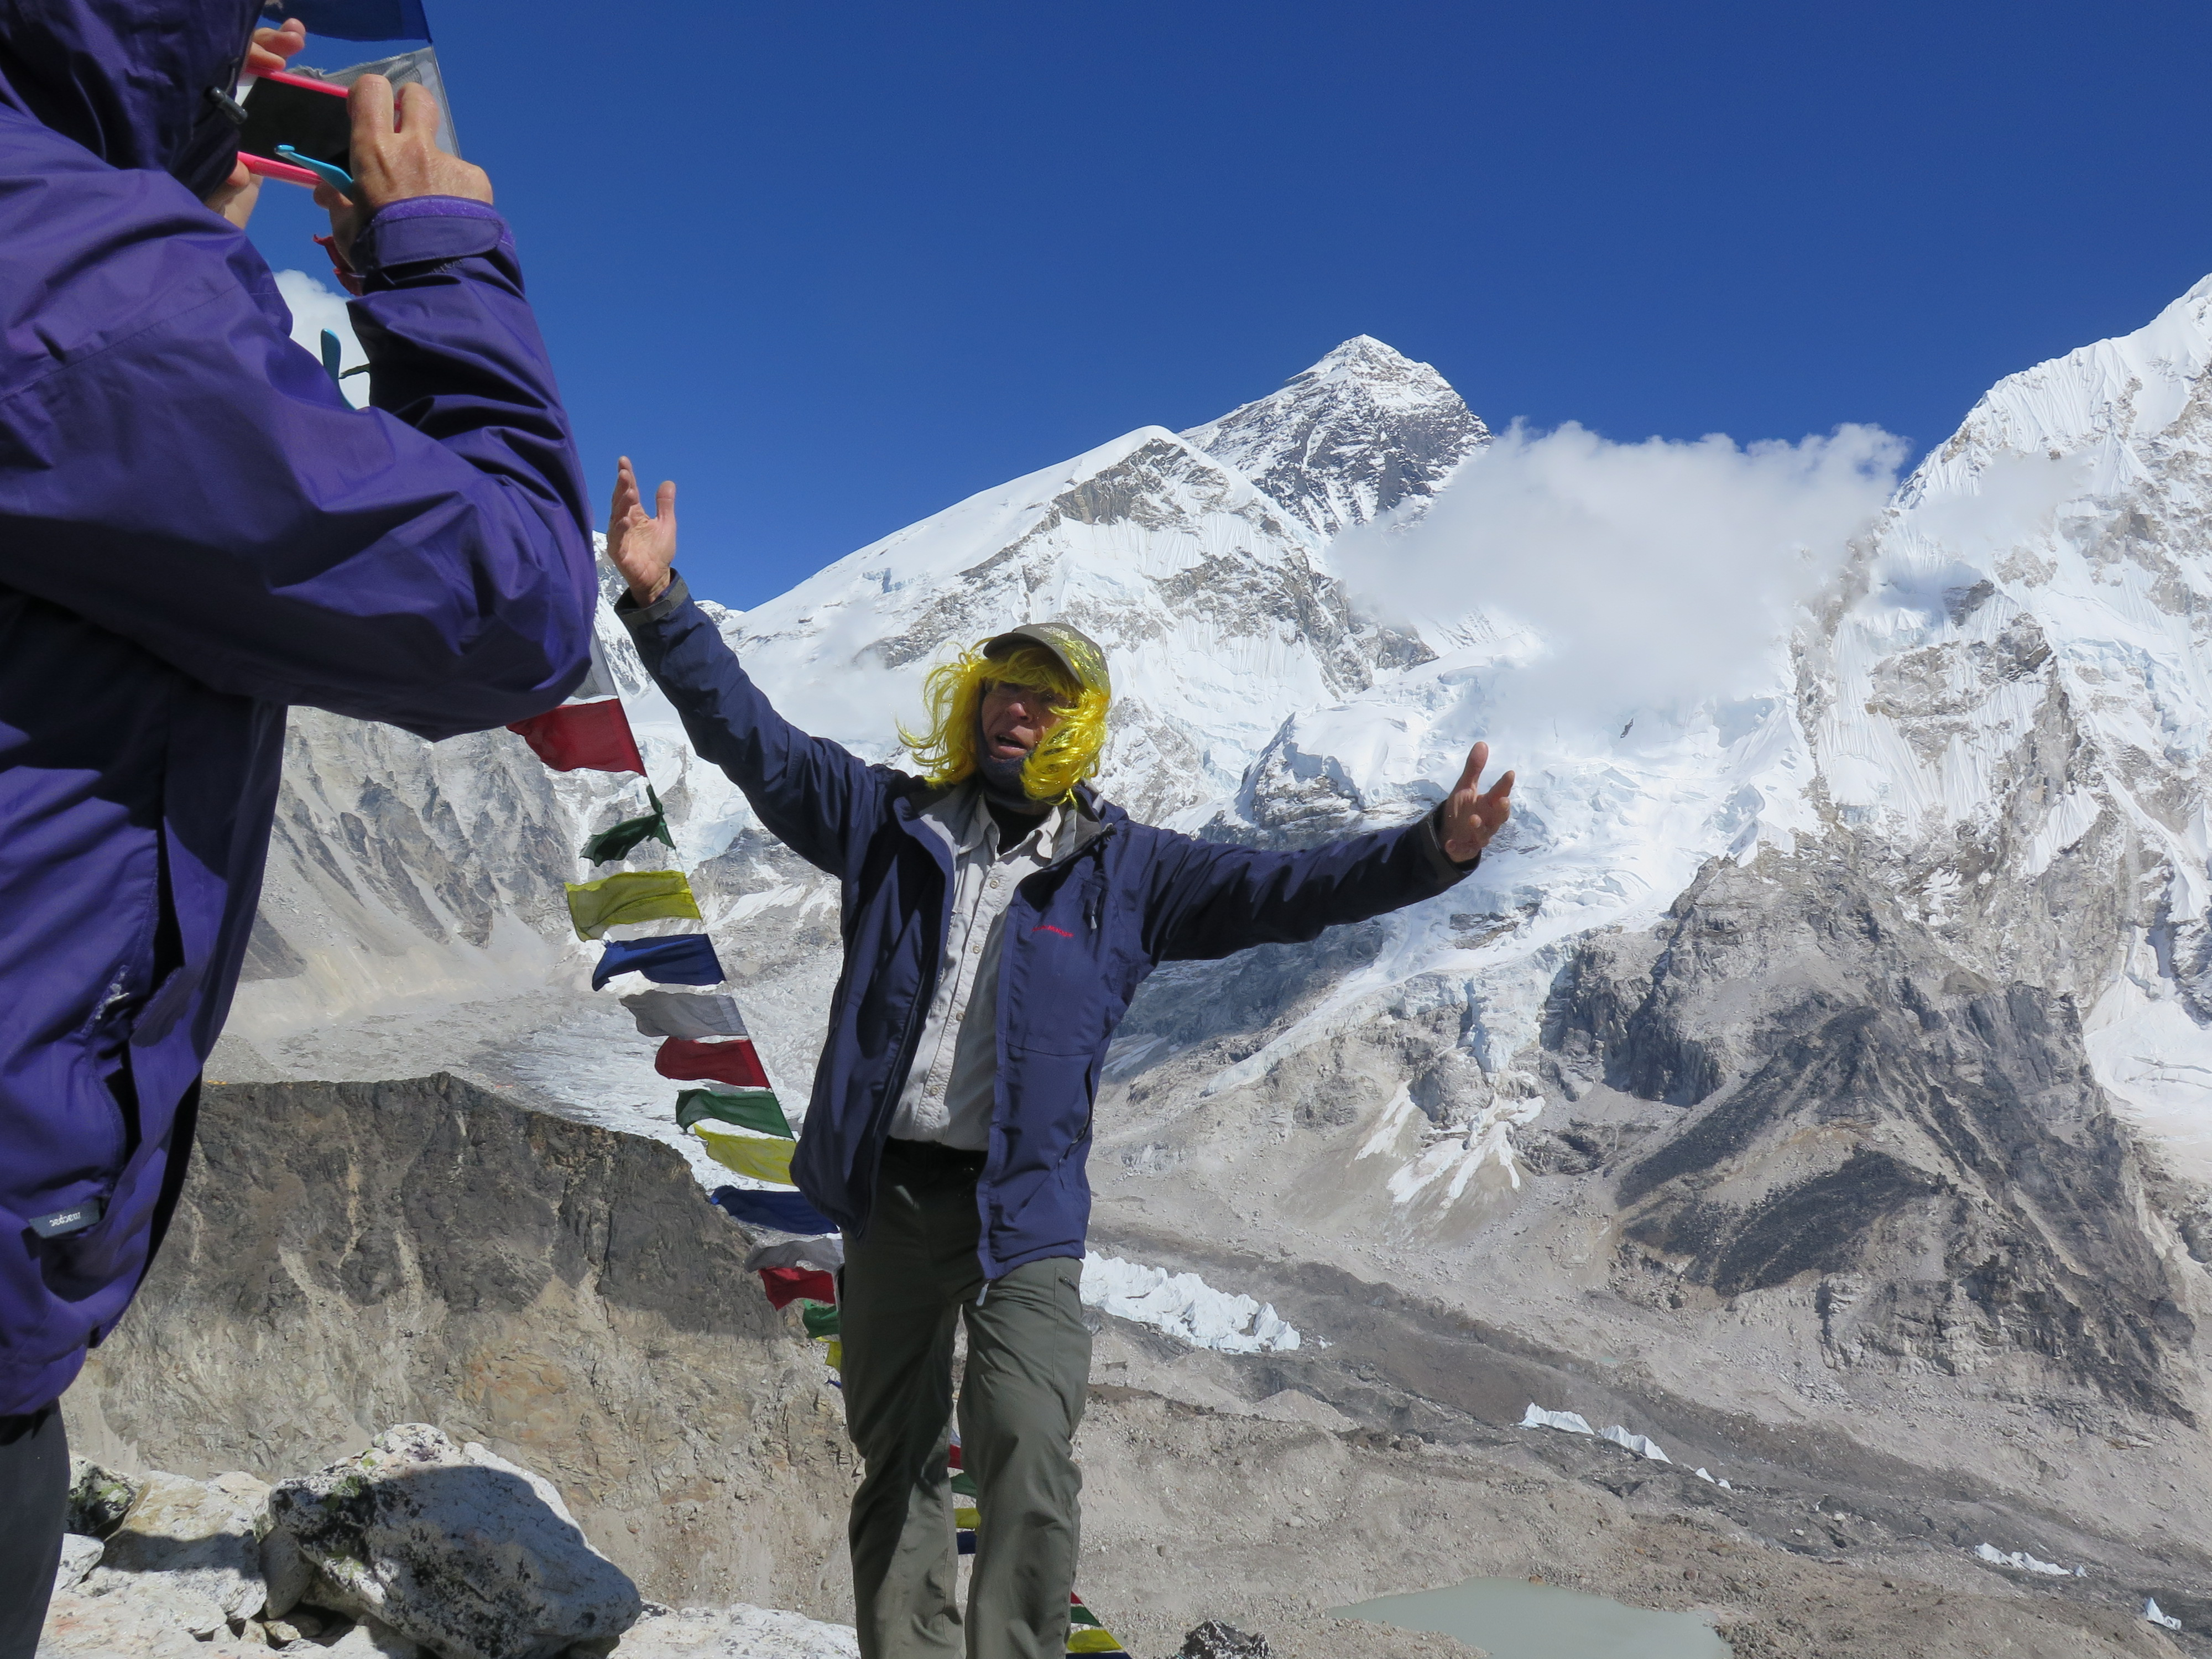 On Kala Patthar with Mount Everest in the Background